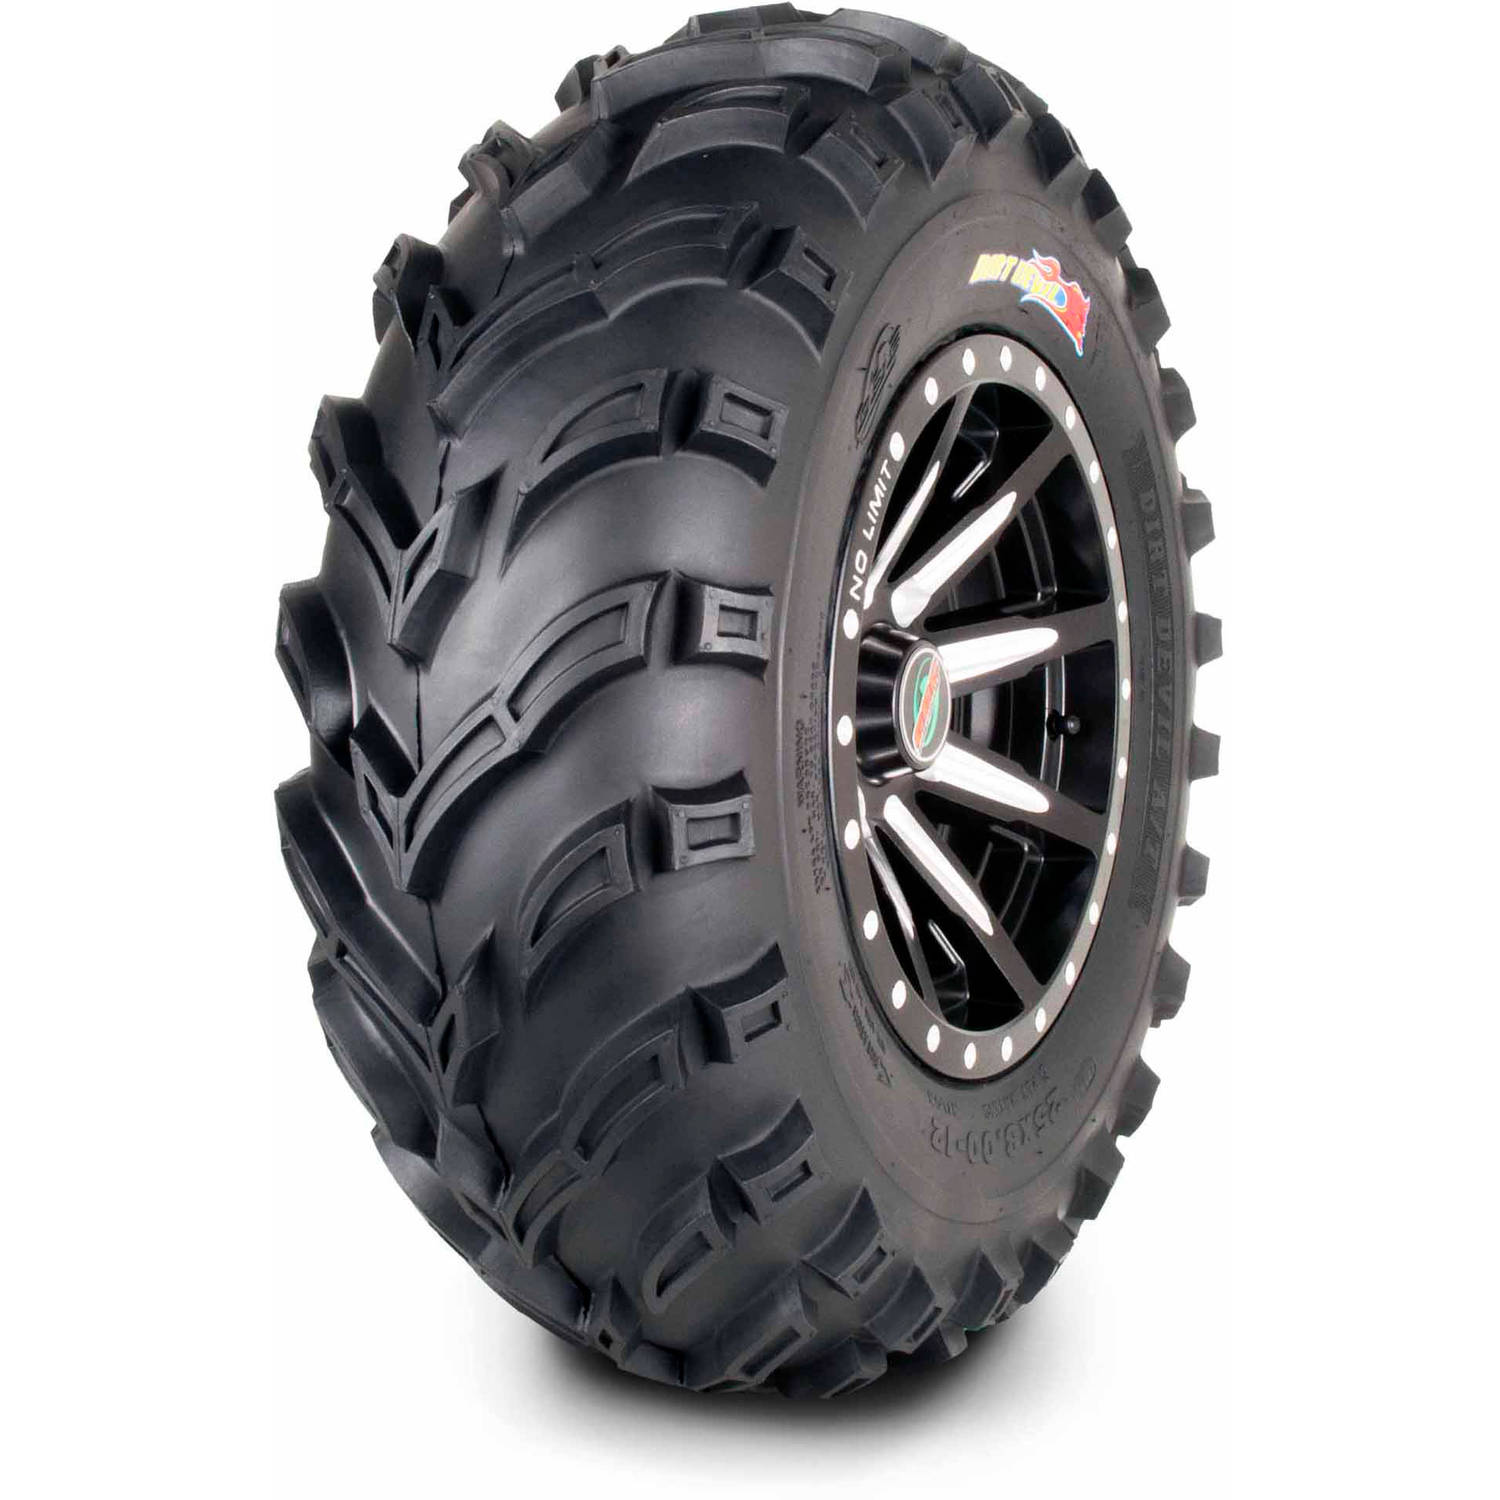 GBC Motorsports Dirt Devil 25X8.00-12 6 Ply ATV/UTV Tire (Tire Only)